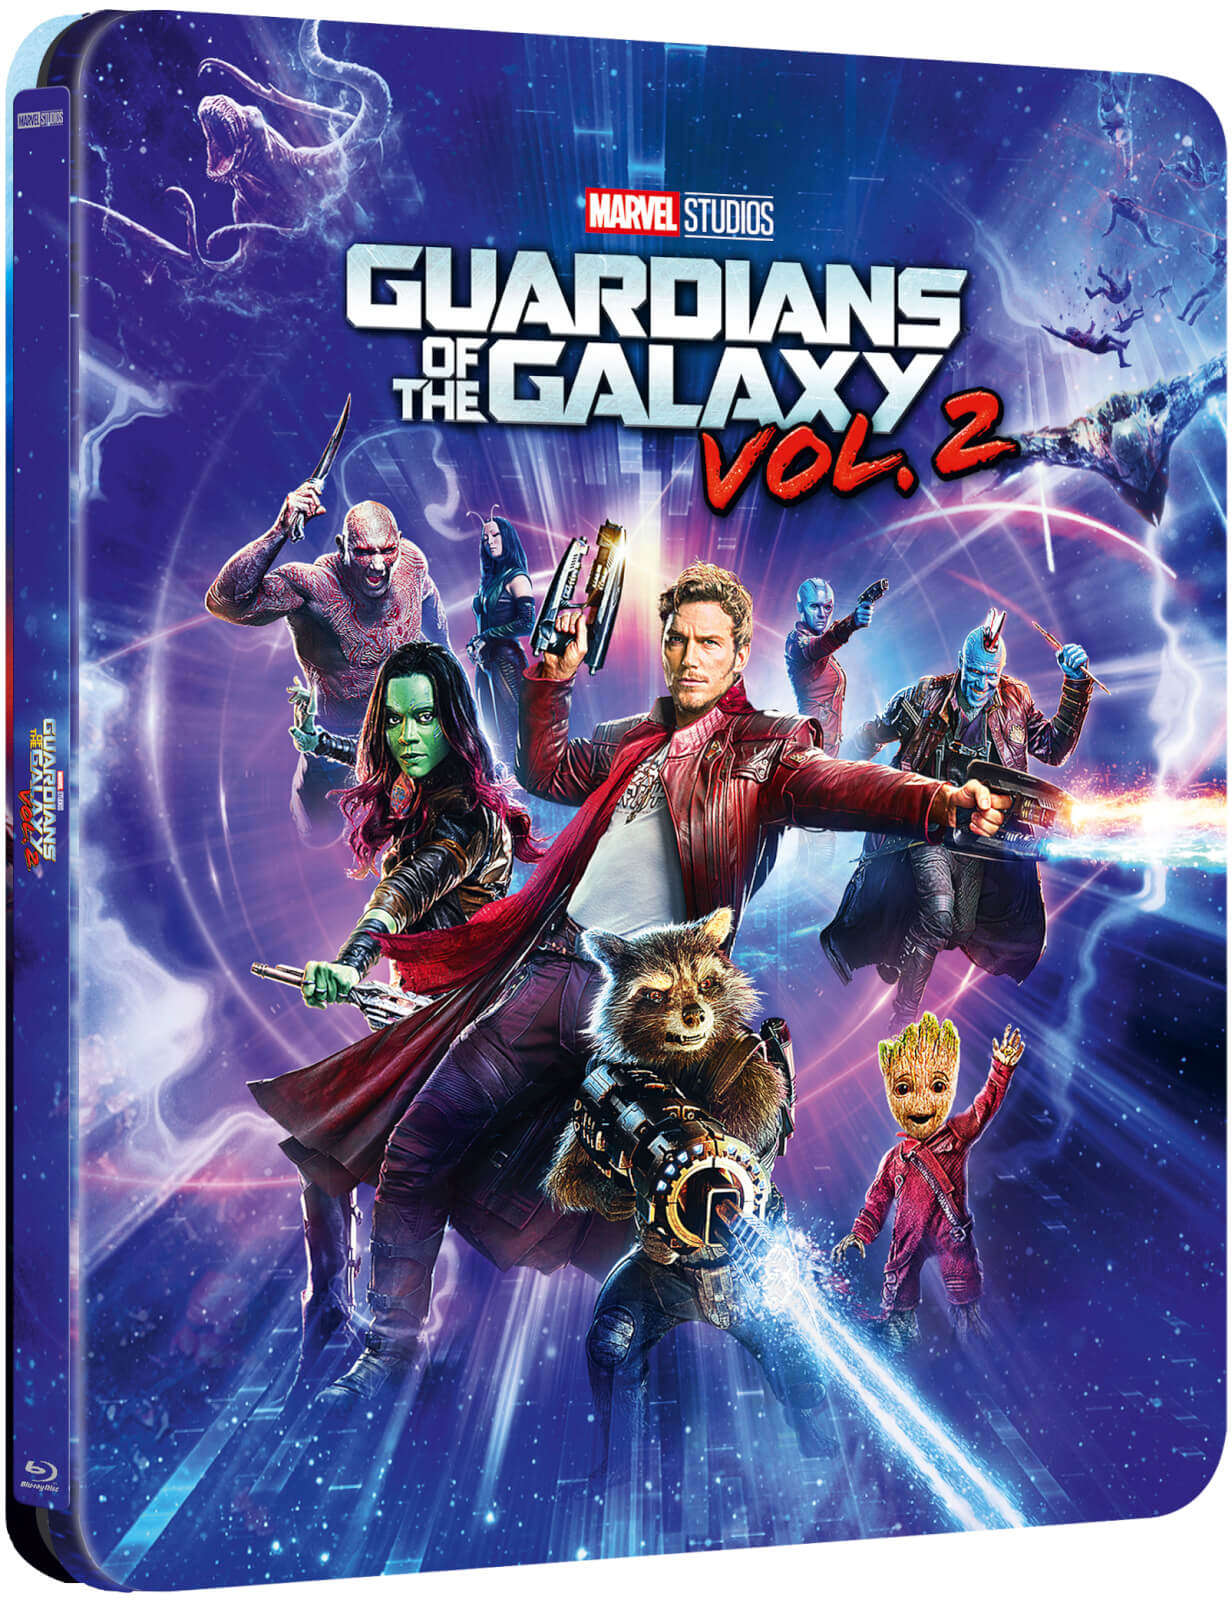 Guardians of the Galaxy Vol. 2 SteelBook